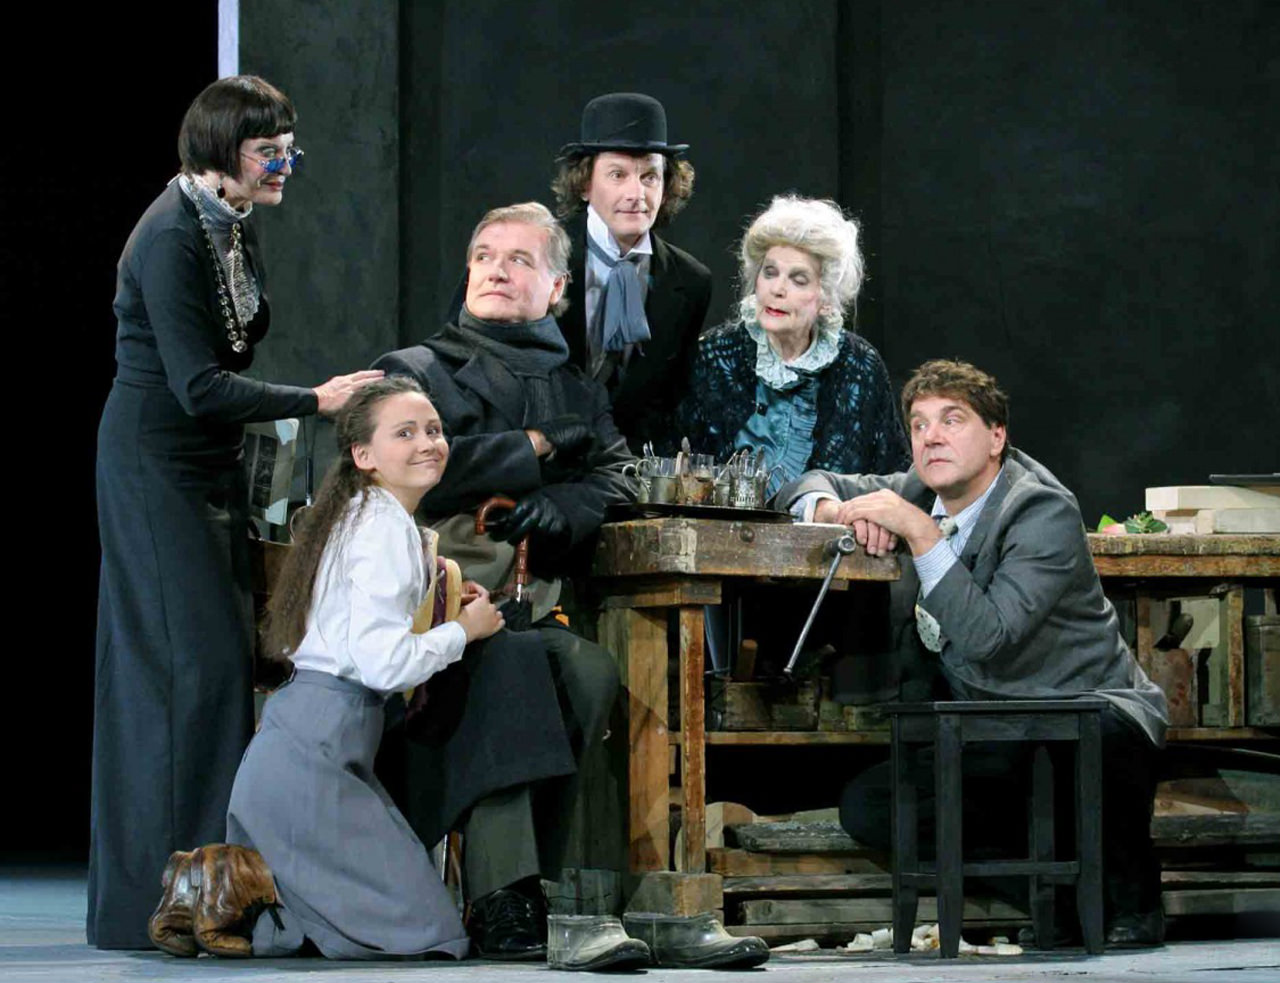 UNCLE VANYA - Show One Productions